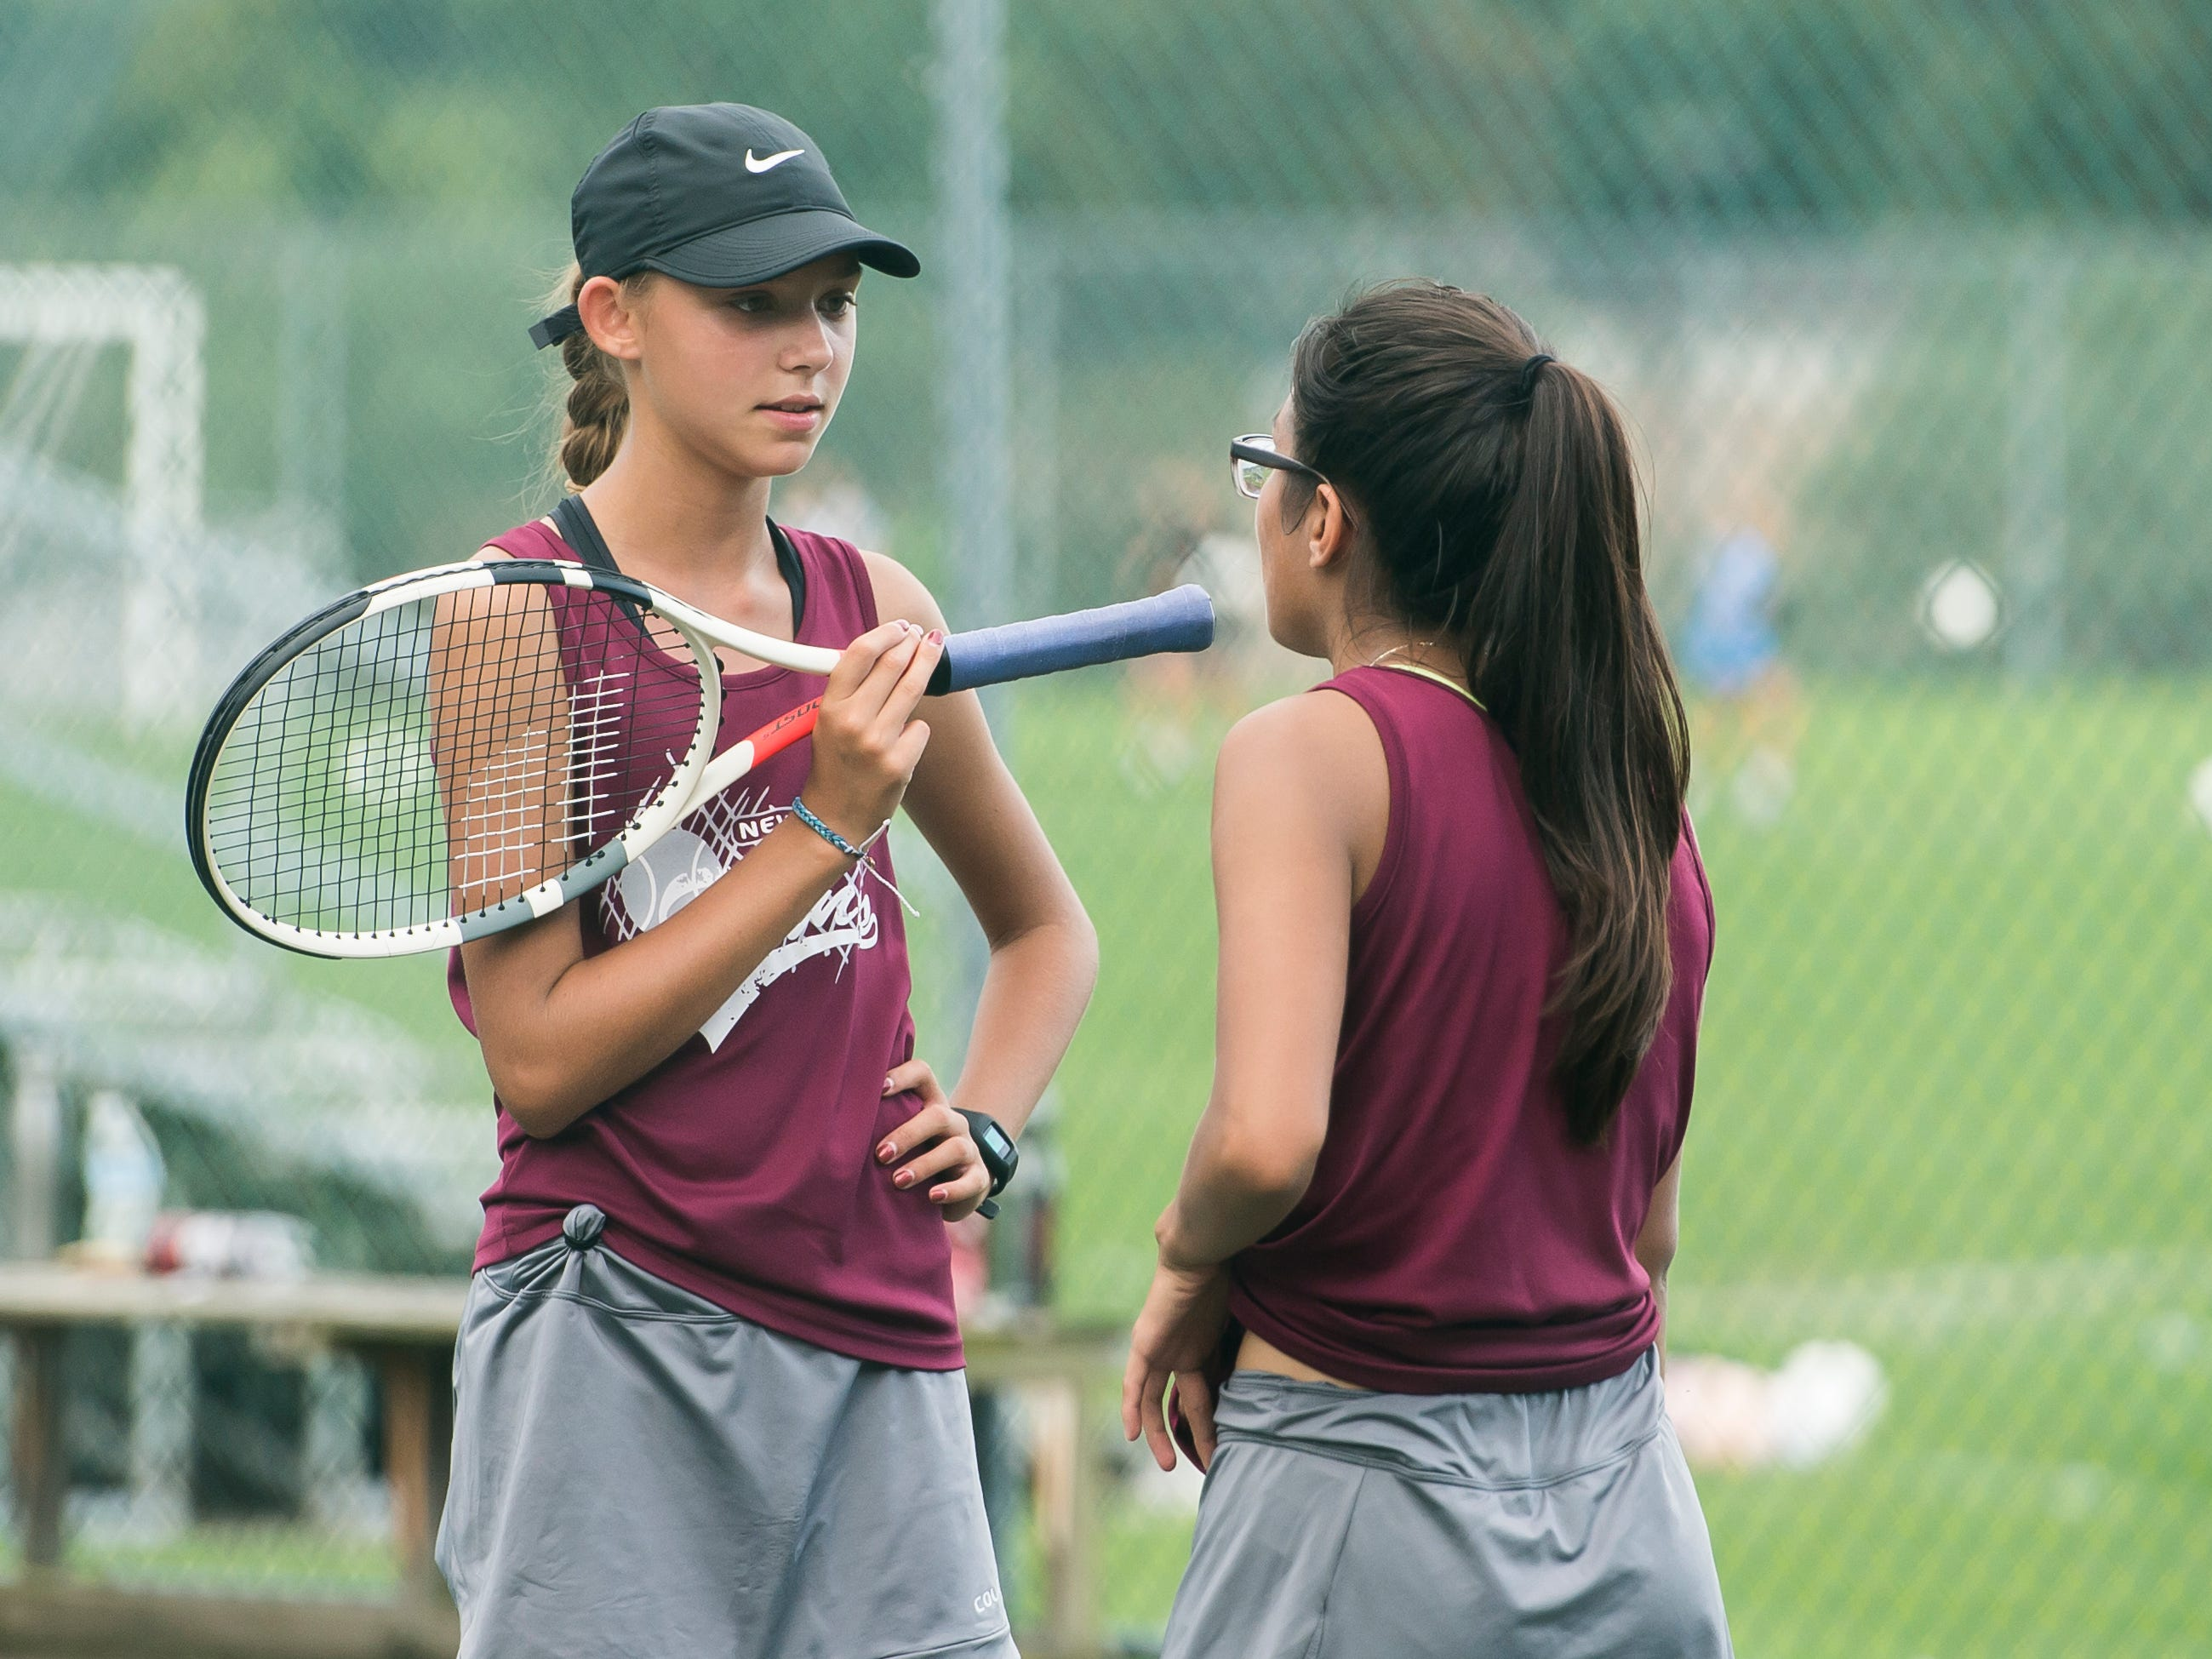 New Oxford's Kayla Hoffman, left, and Anallely Rugerio-Soto talk between sets while playing in the No. 2 doubles match against South Western on Wednesday, September 26, 2018. The match had to be postponed due to rain and was finished on October 2.